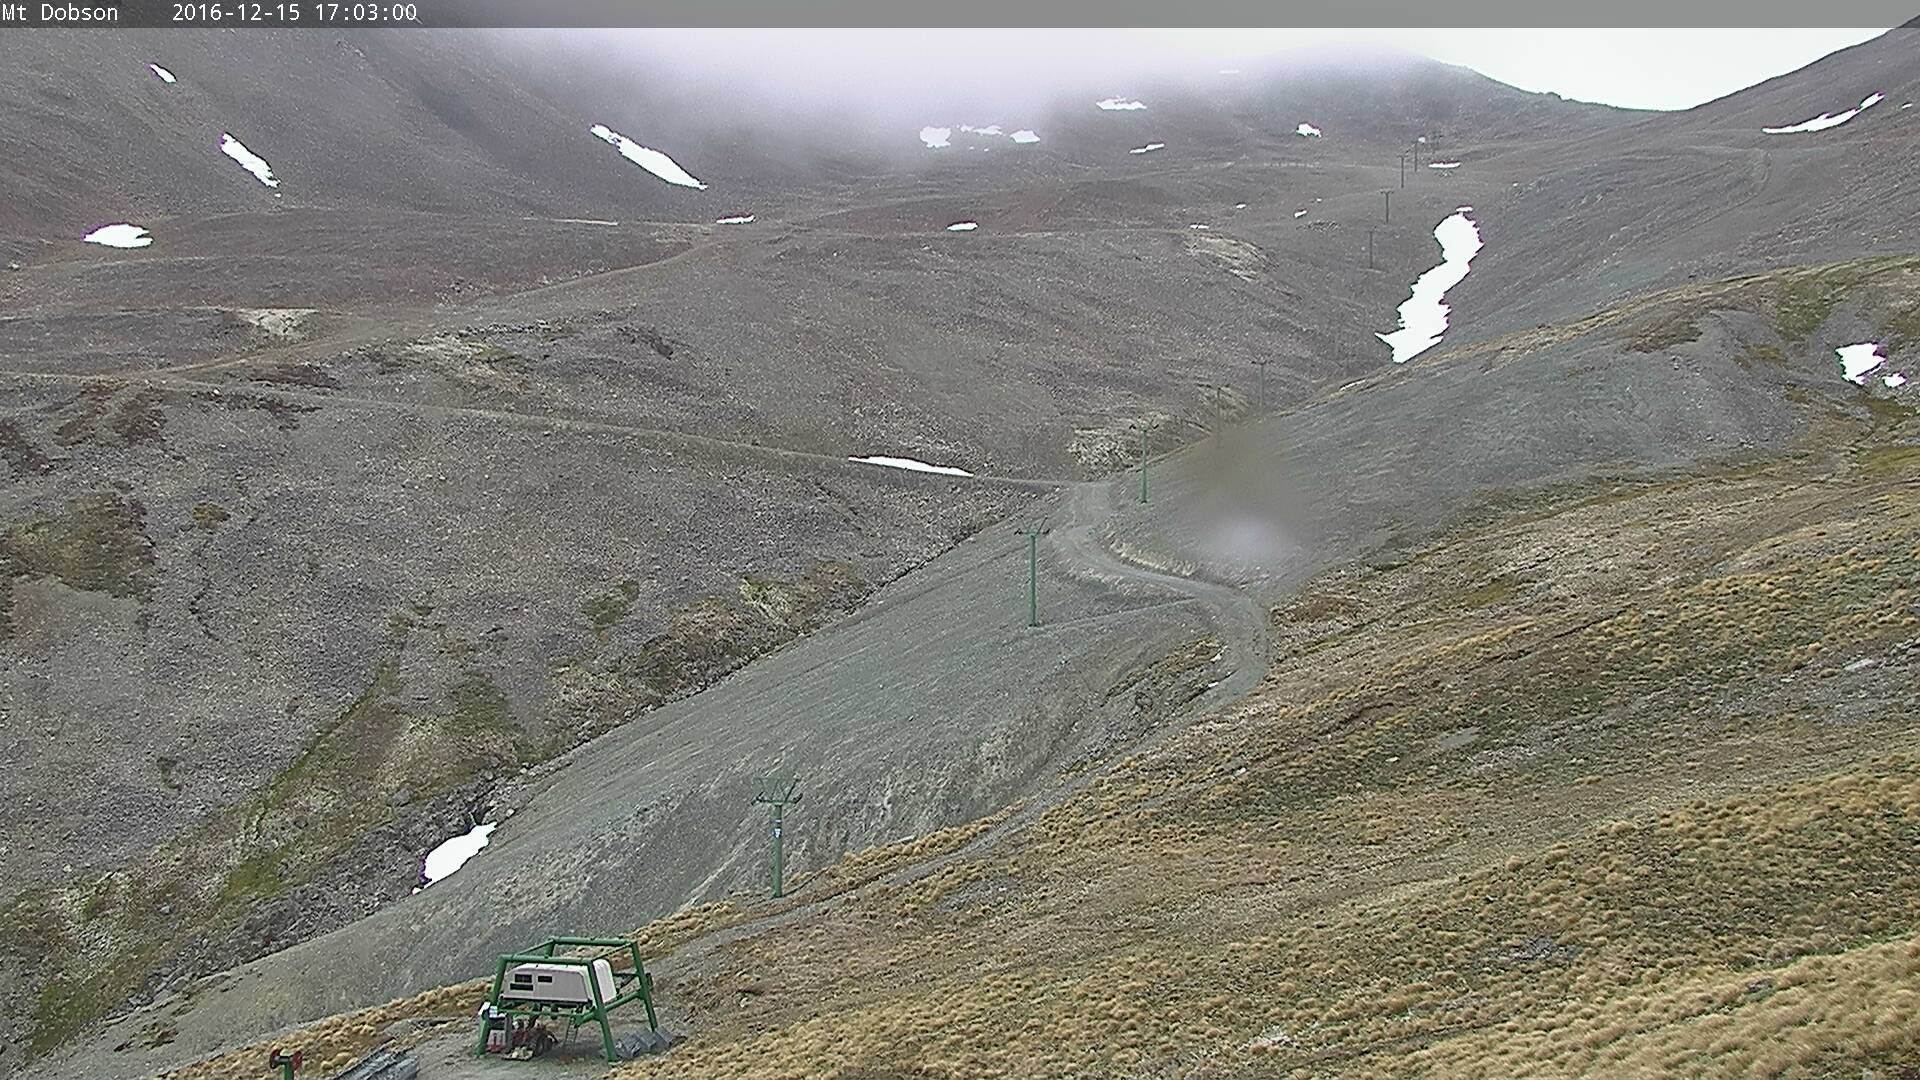 webcam Mount Dobson Tekapo